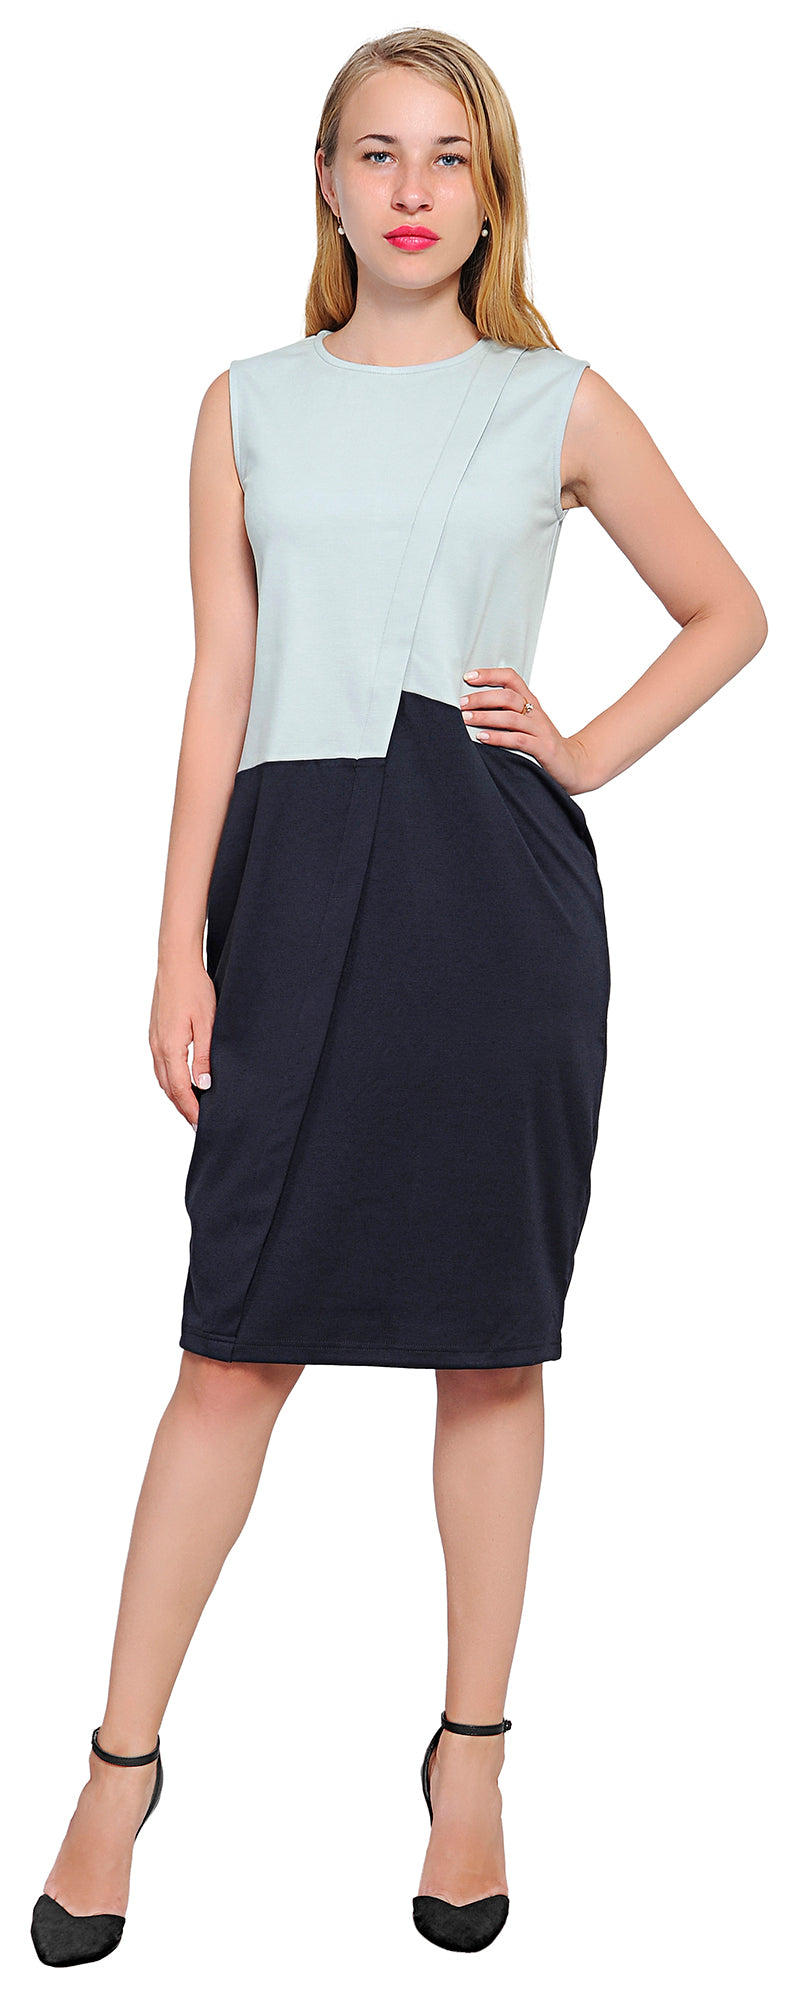 Womens cocktail party work office business dress loose colorblock womens cocktail work loose colorblock shift dress ombrellifo Choice Image